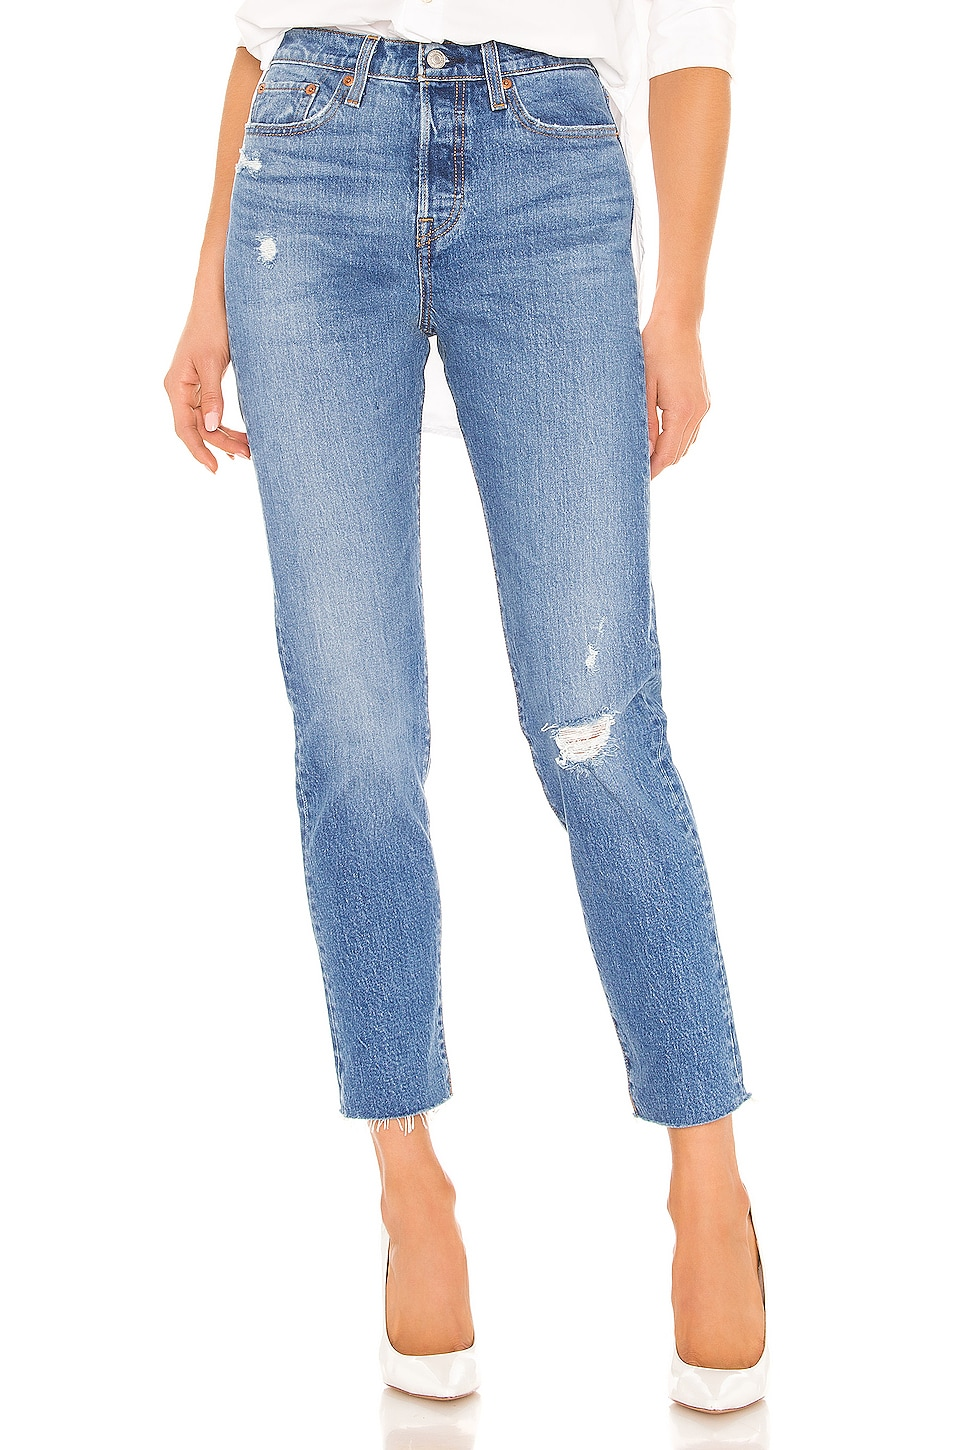 LEVI'S JEAN JAMBES FUSELÉES WEDGIE ICON FIT